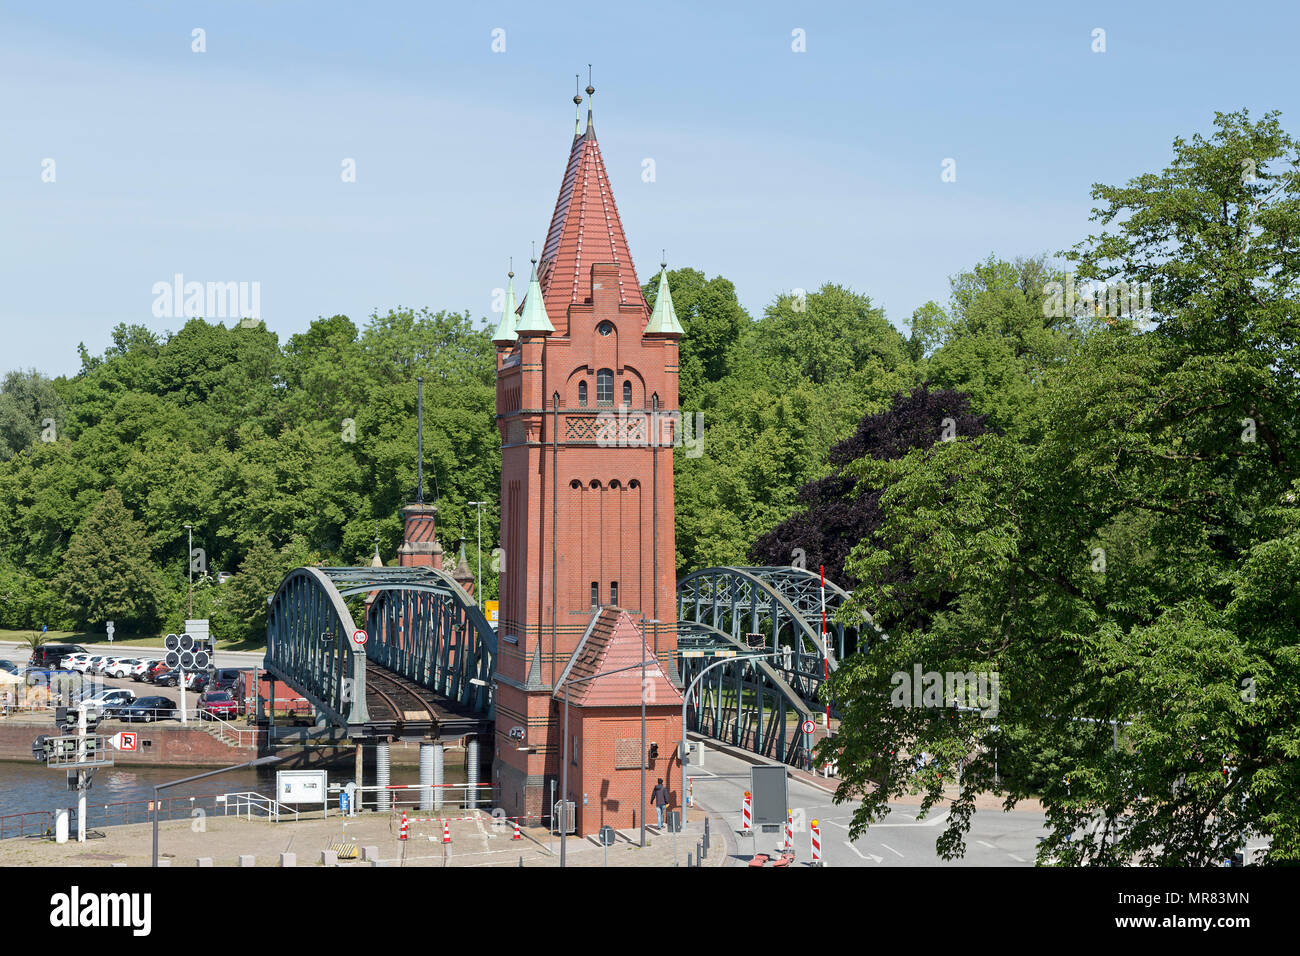 lifting bridges, Luebeck, Schleswig-Holstein, Germany - Stock Image